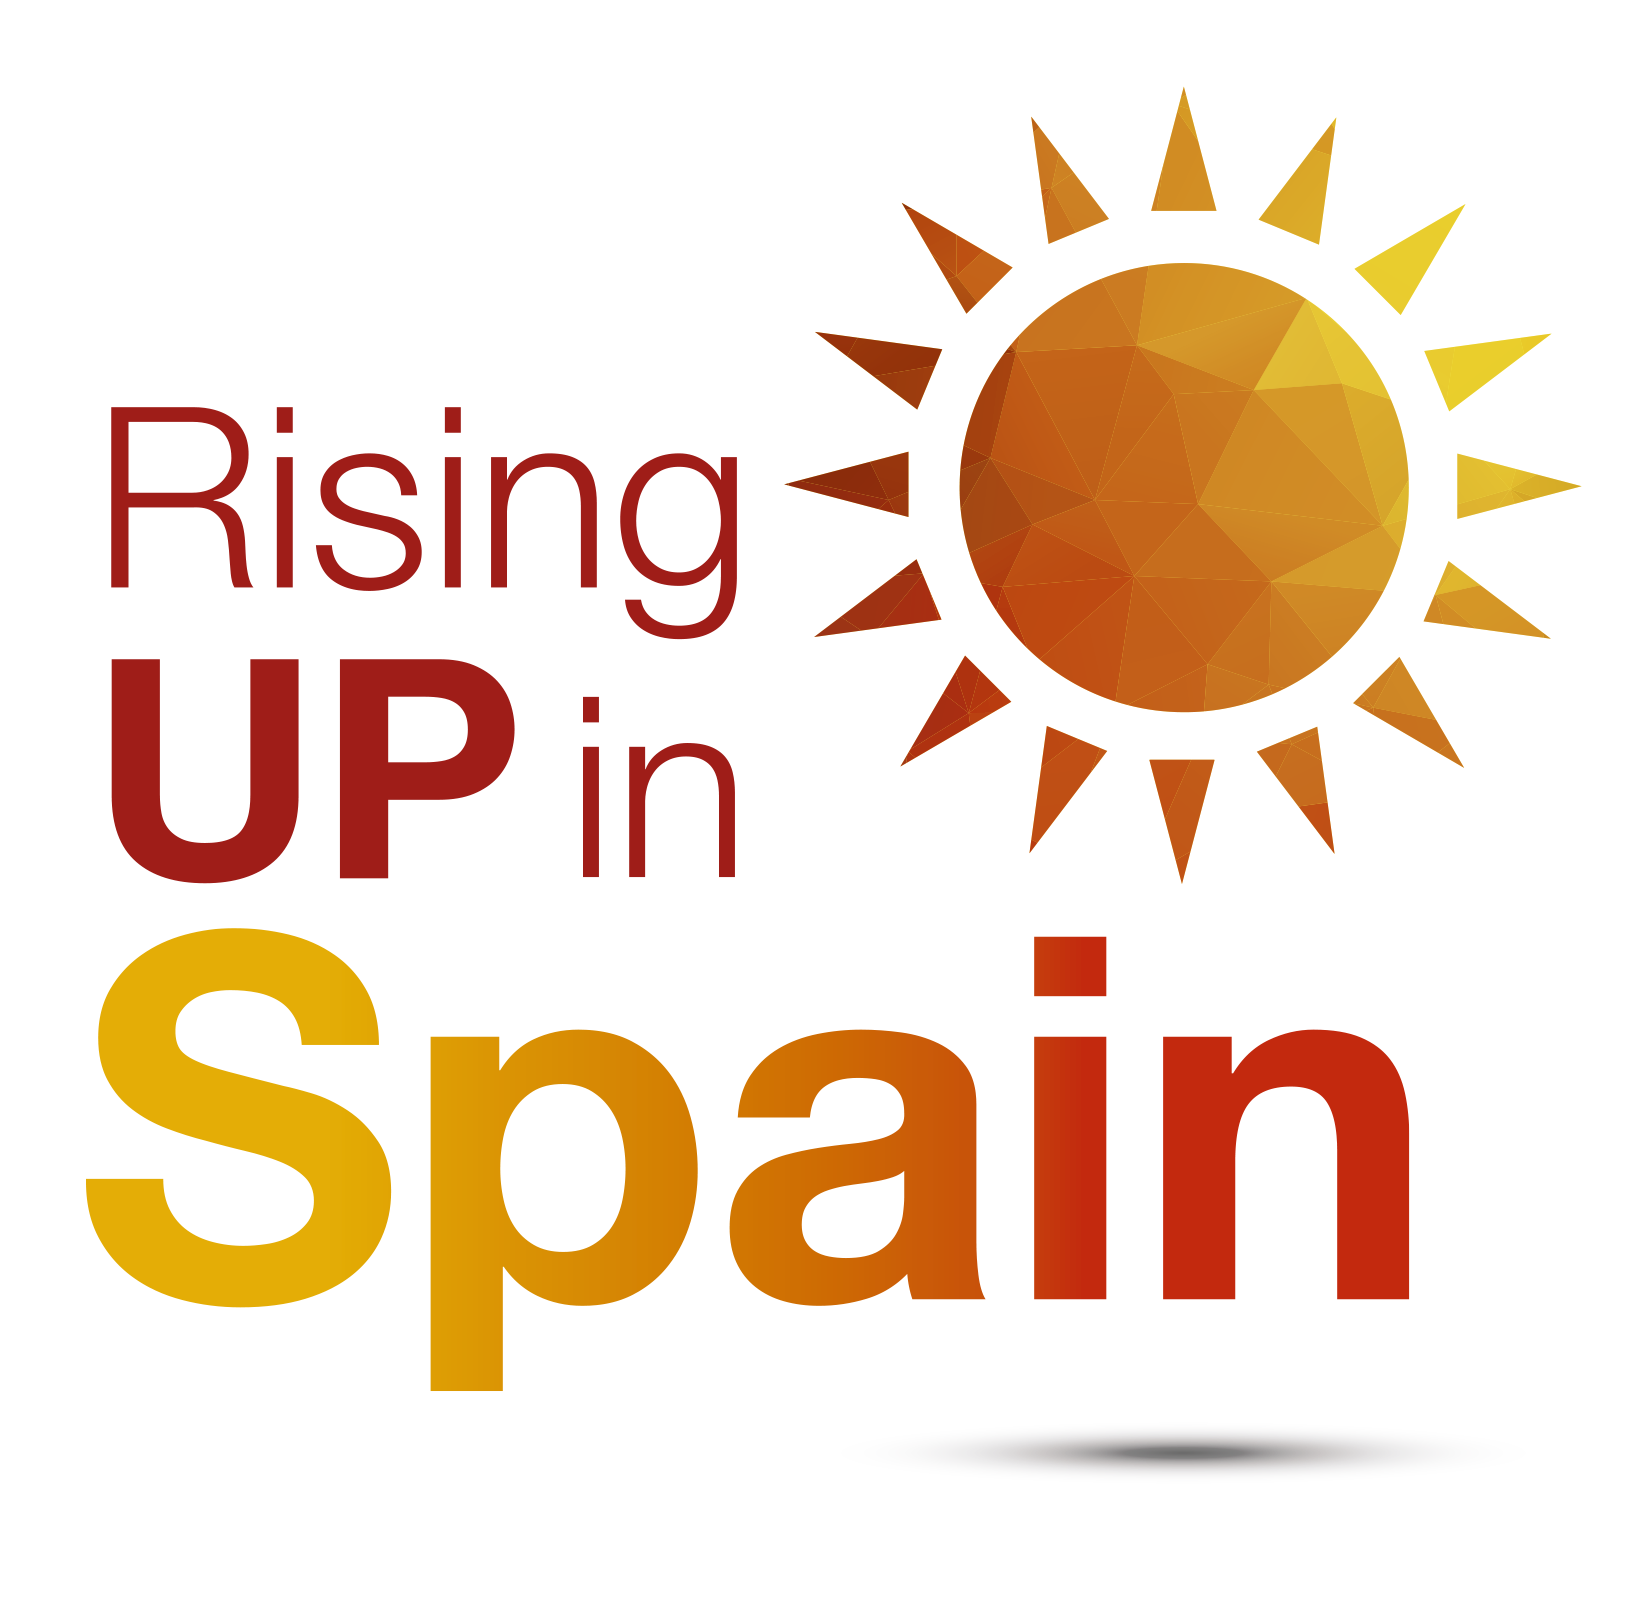 image|Rise up in Spain logo